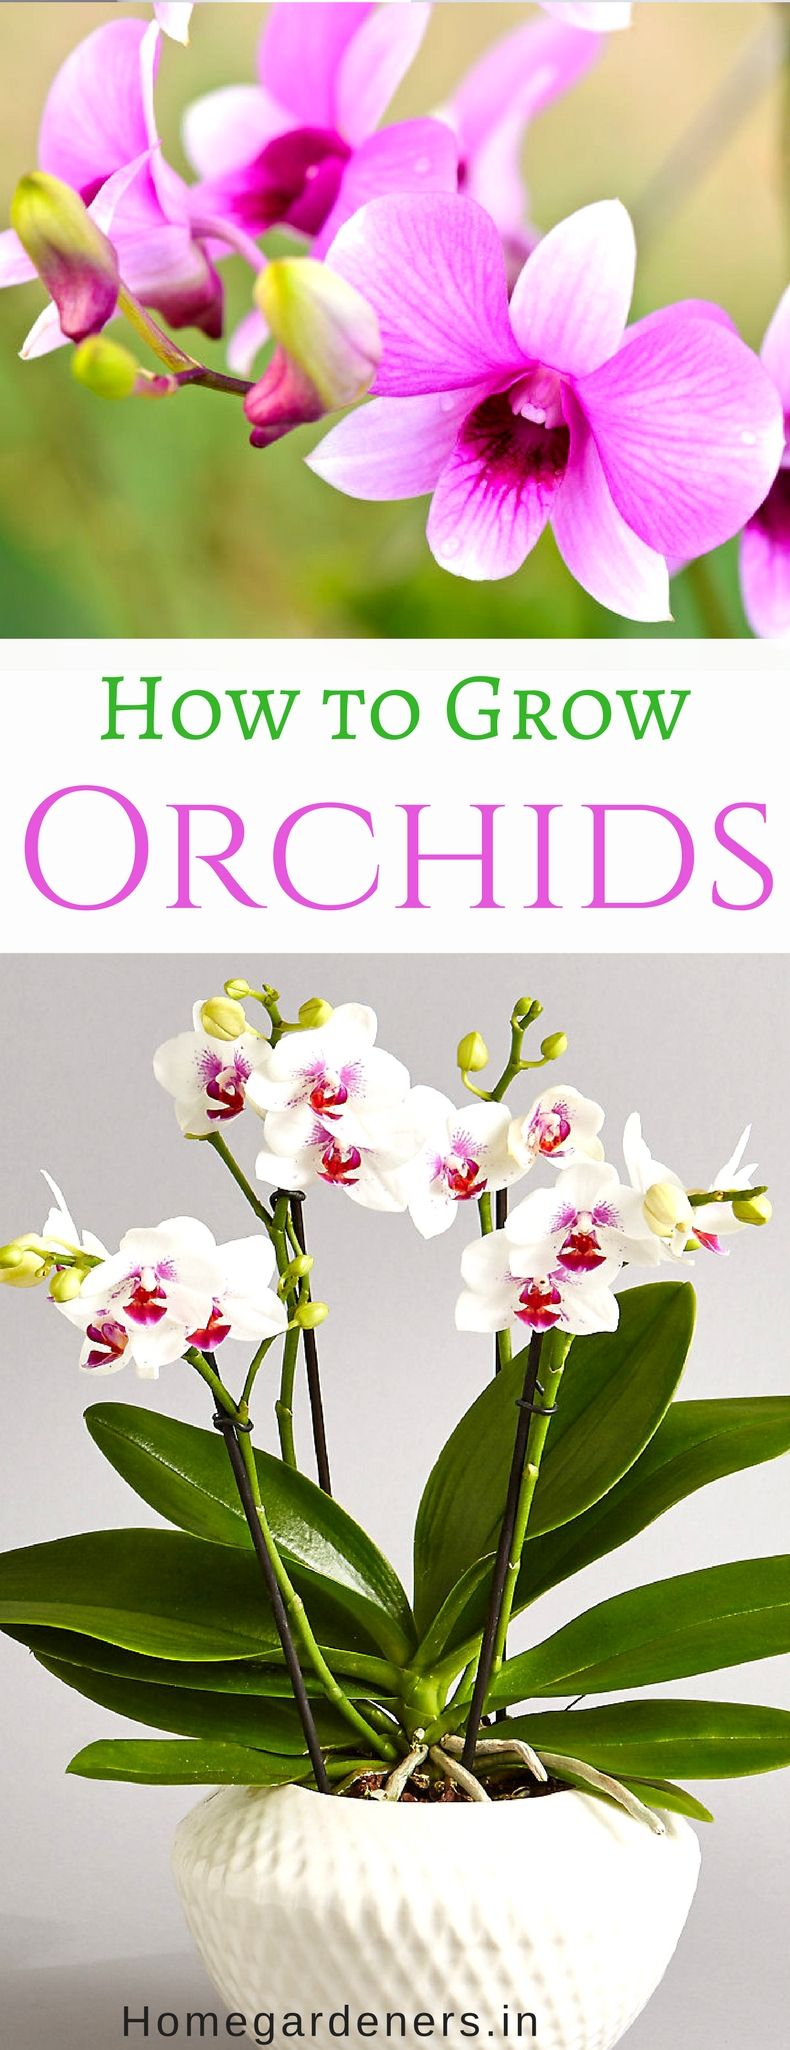 Growing orchids how to care orchid plant indoors and outdoors